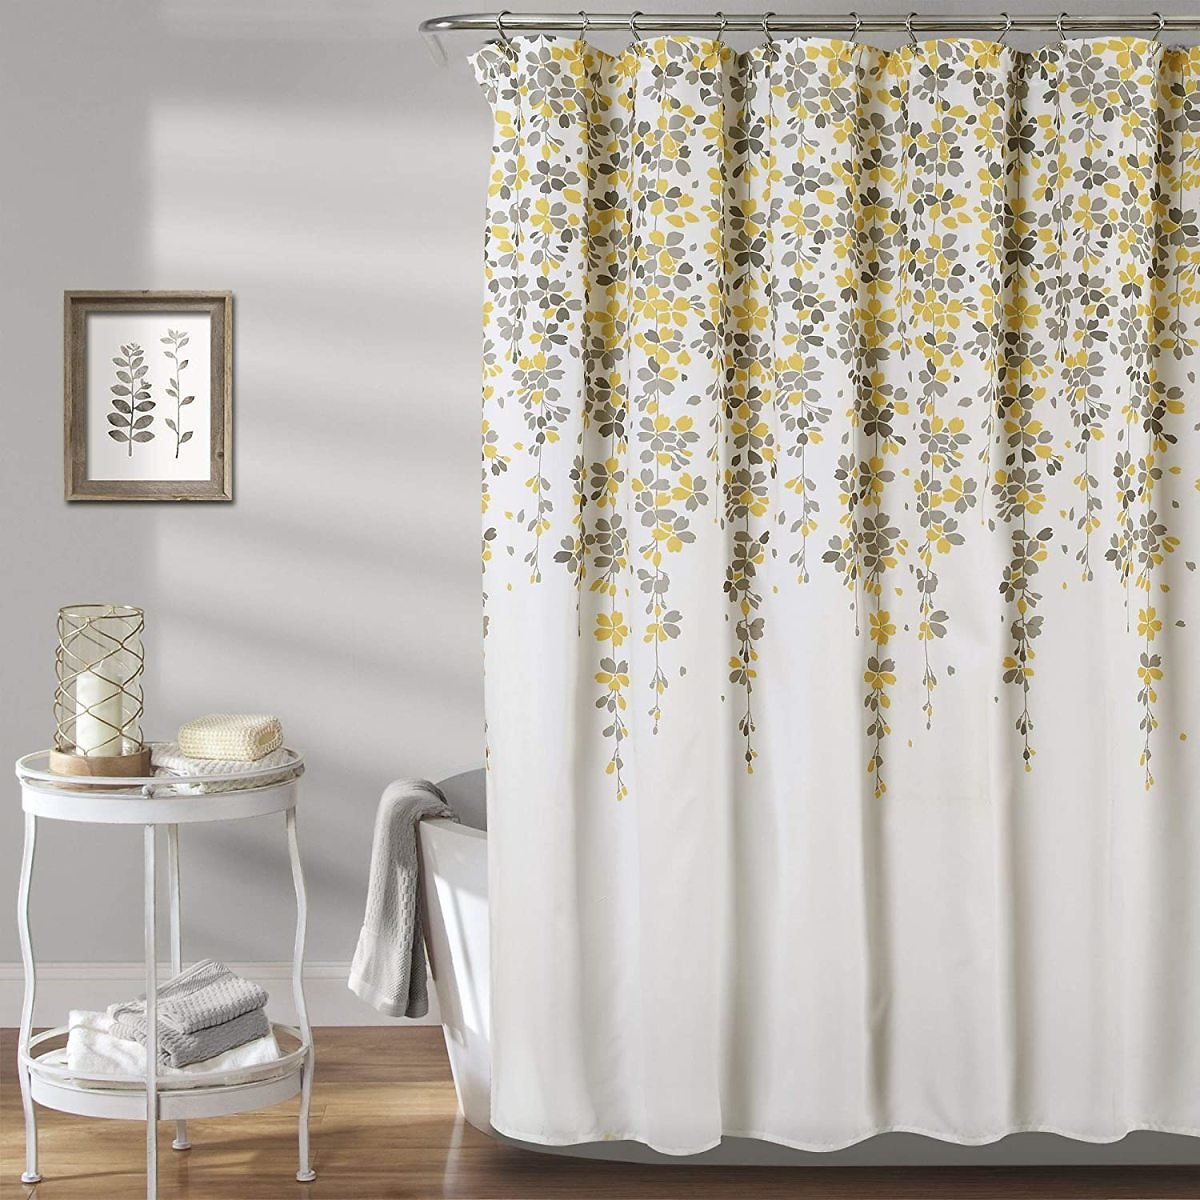 "Lush Decor Weeping Flower Shower Curtain - Fabric Floral Vine Print Design, 72"" X 72"", Yellow & Gray"